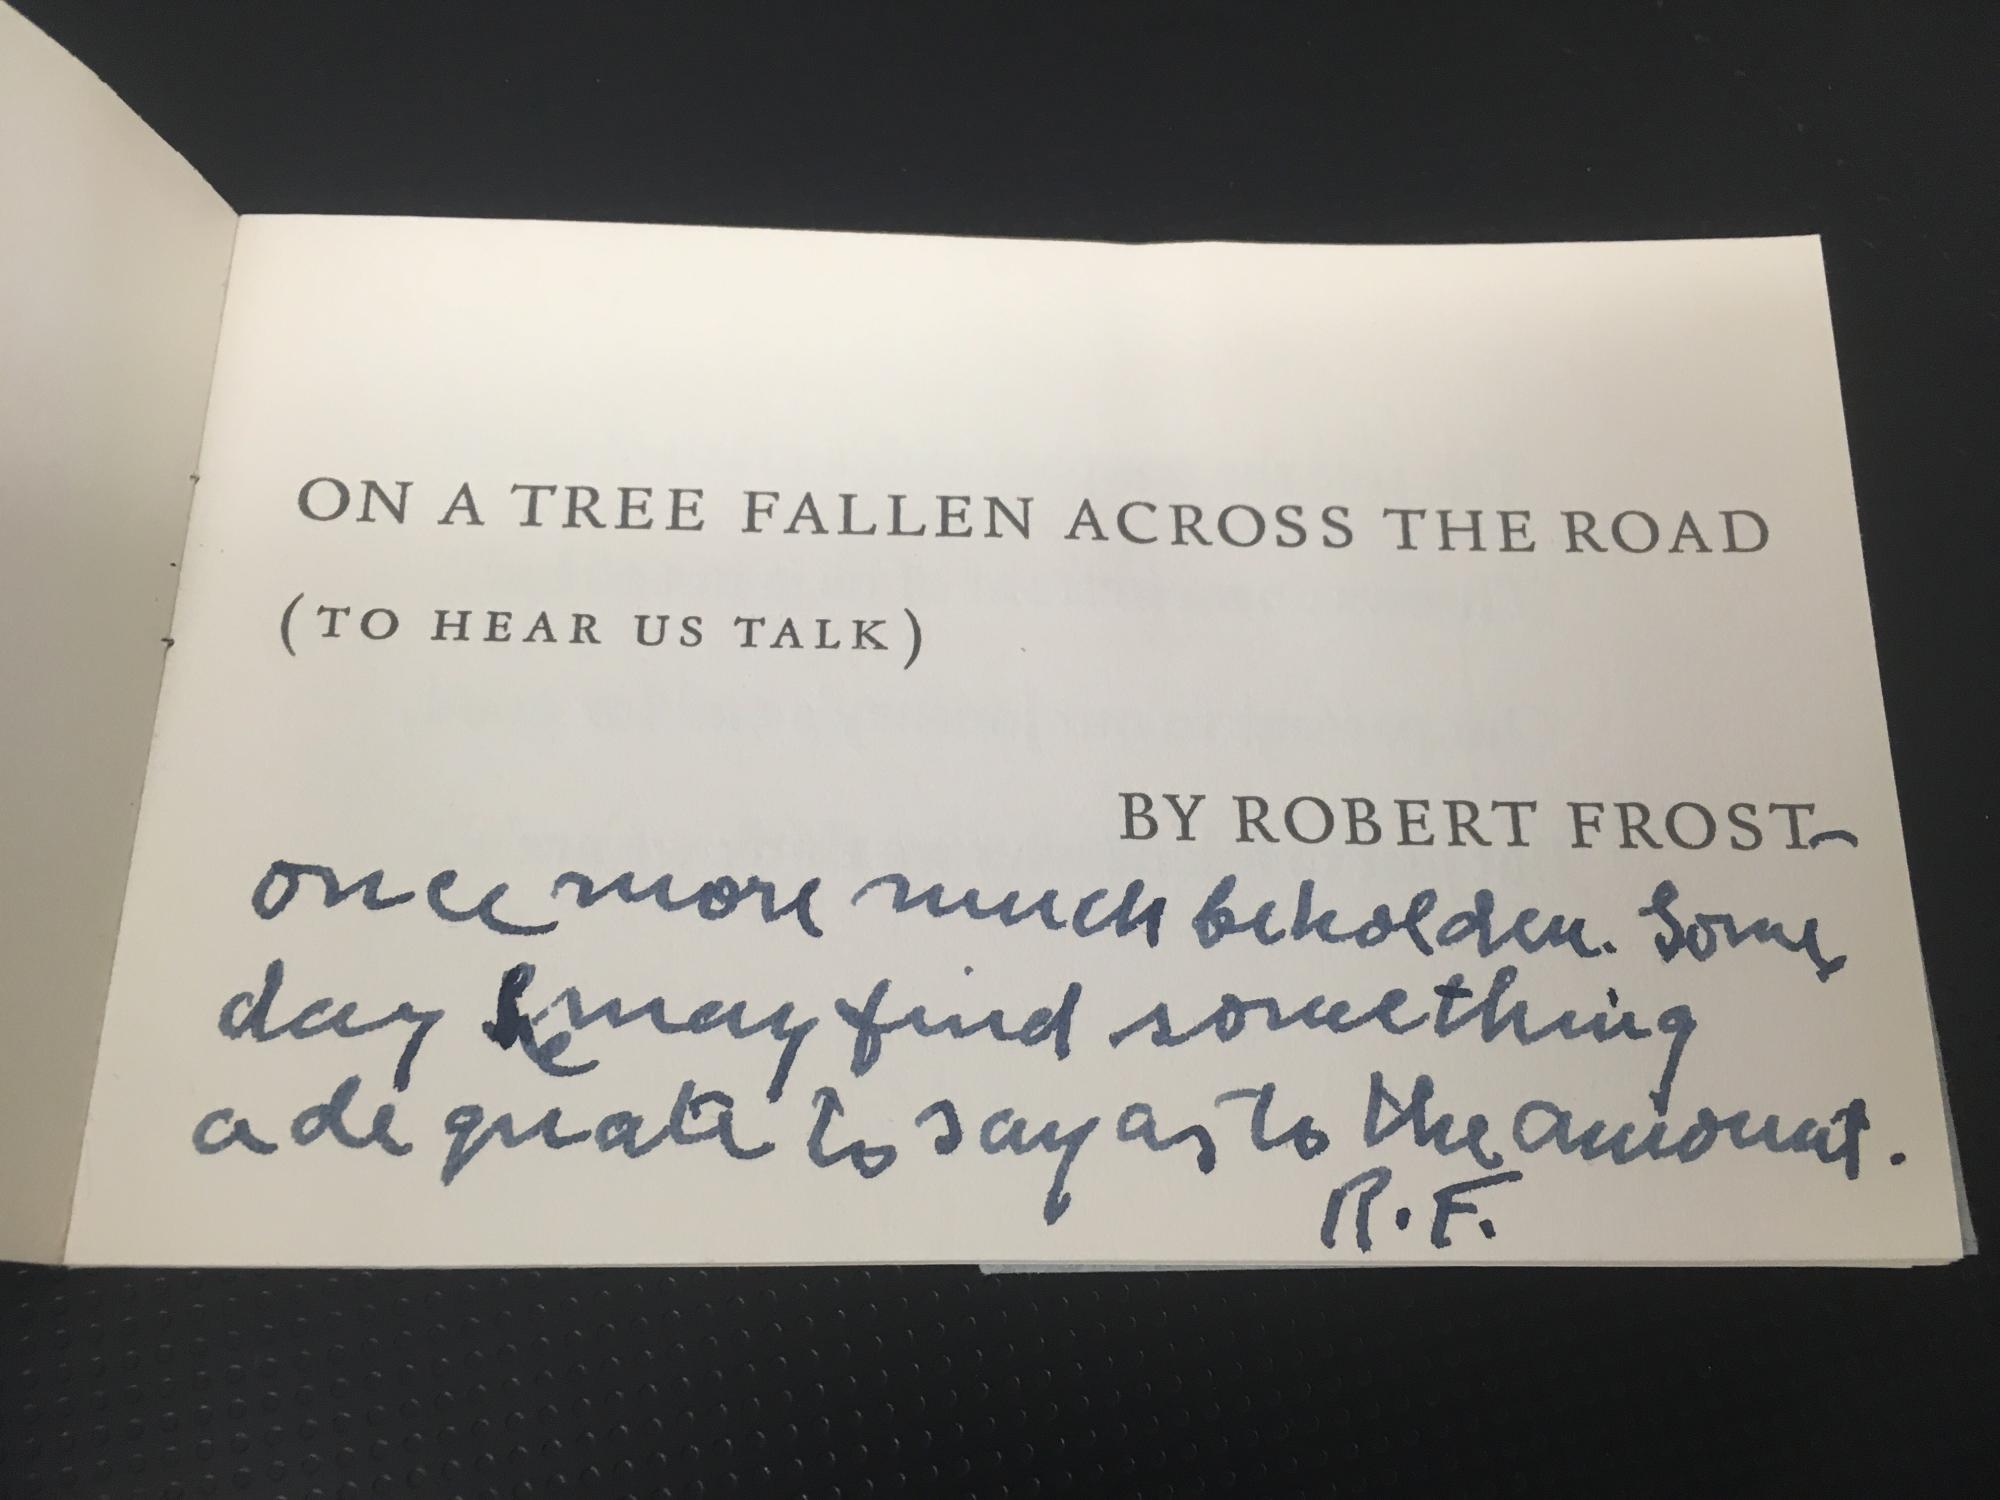 Robert Frost Christmas Card, with a personal greeting.